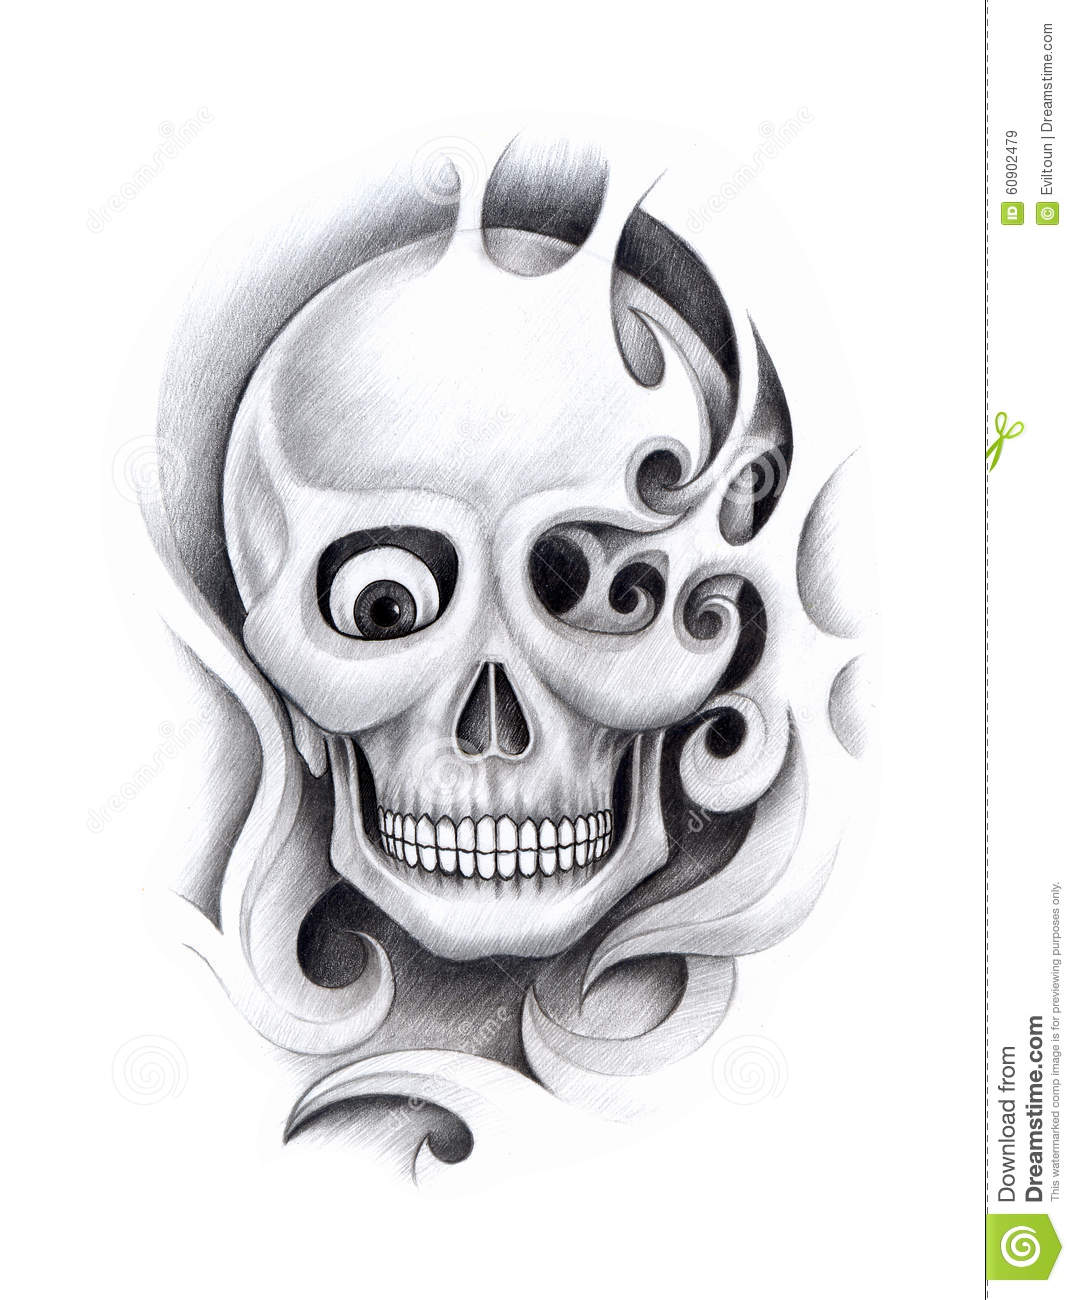 art skull tattoo stock illustration image 60902479. Black Bedroom Furniture Sets. Home Design Ideas